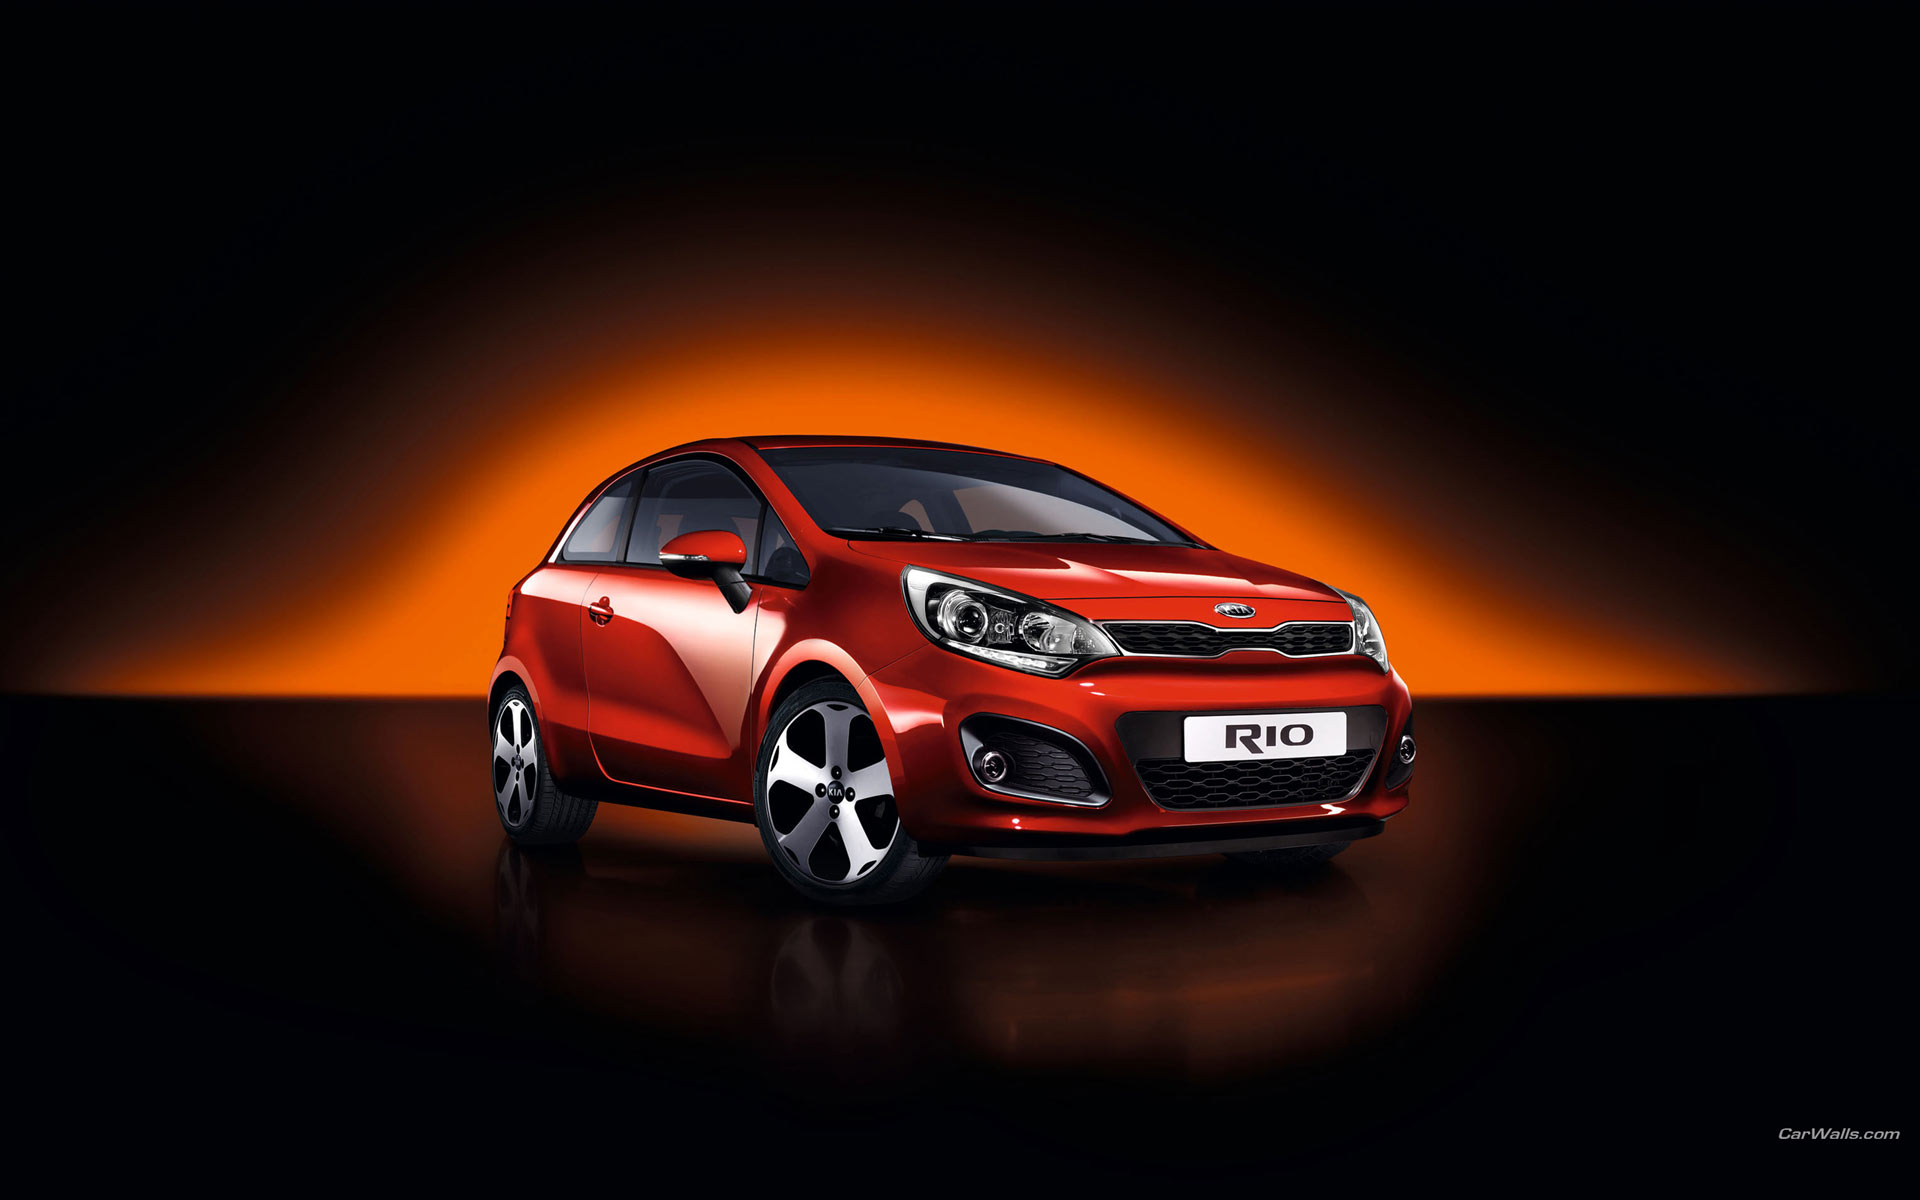 Kia Rio Desktop wallpapers 52833 1920x1200